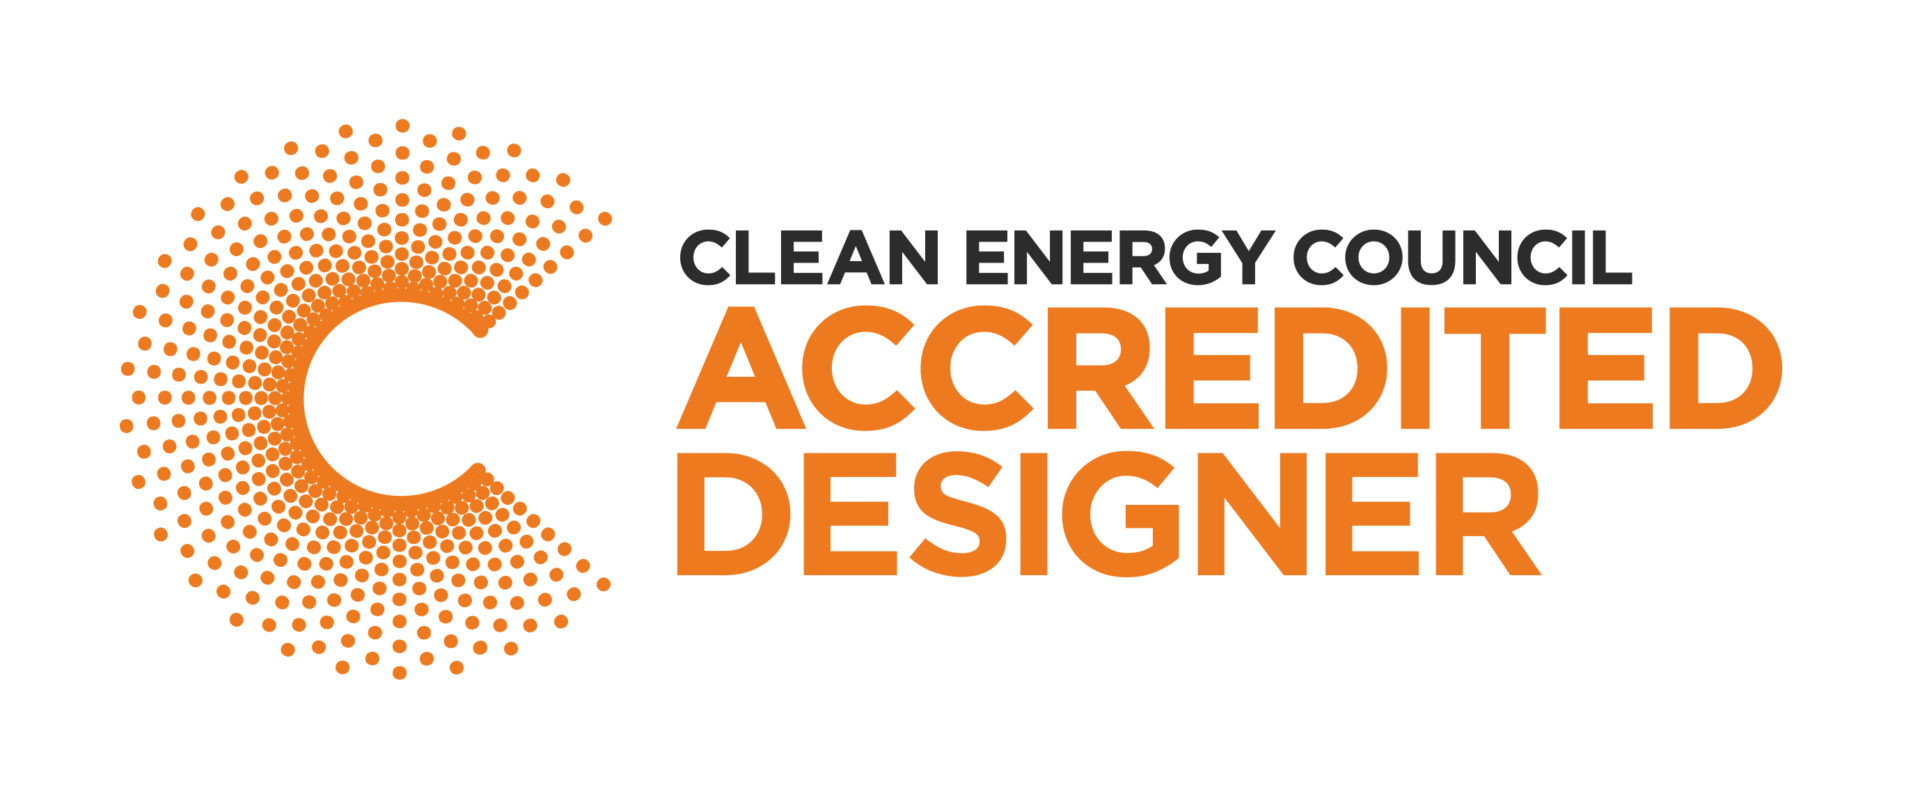 Clean Energy Council Accredited Designer Logo